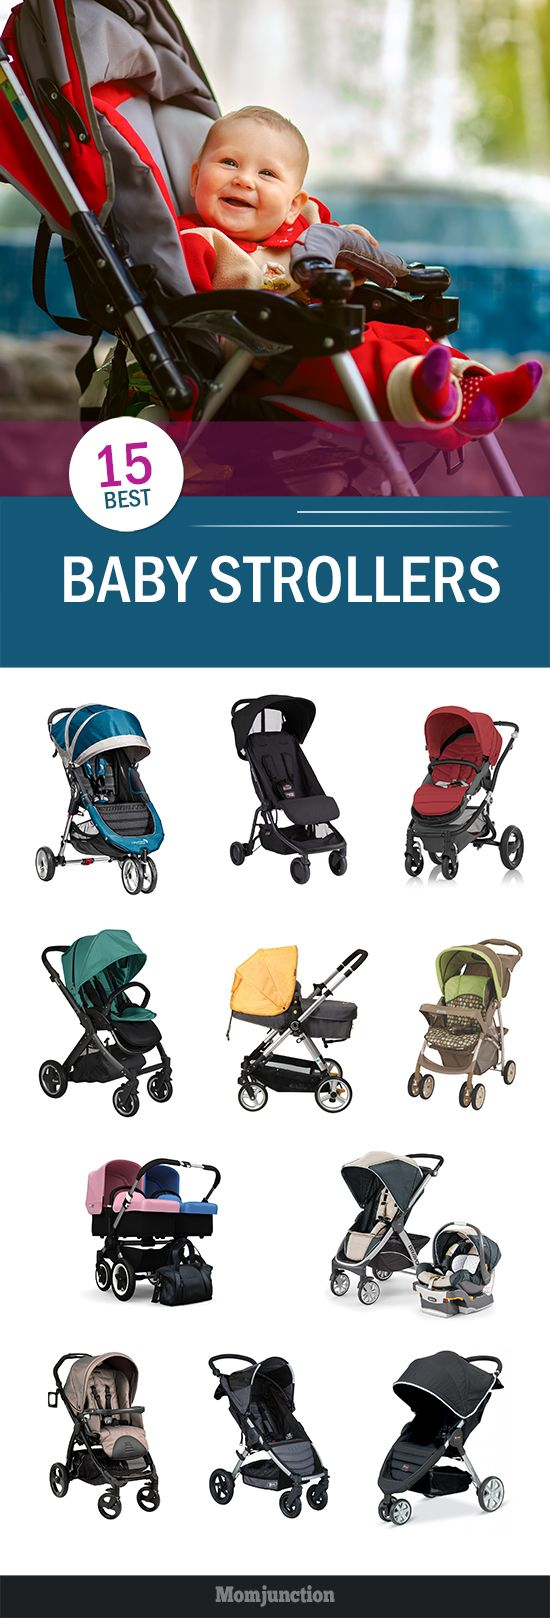 Are you looking for a multi-functional stroller for your baby? Do you feel confused about the myriad of choices available? Check out 15 best baby strollers.